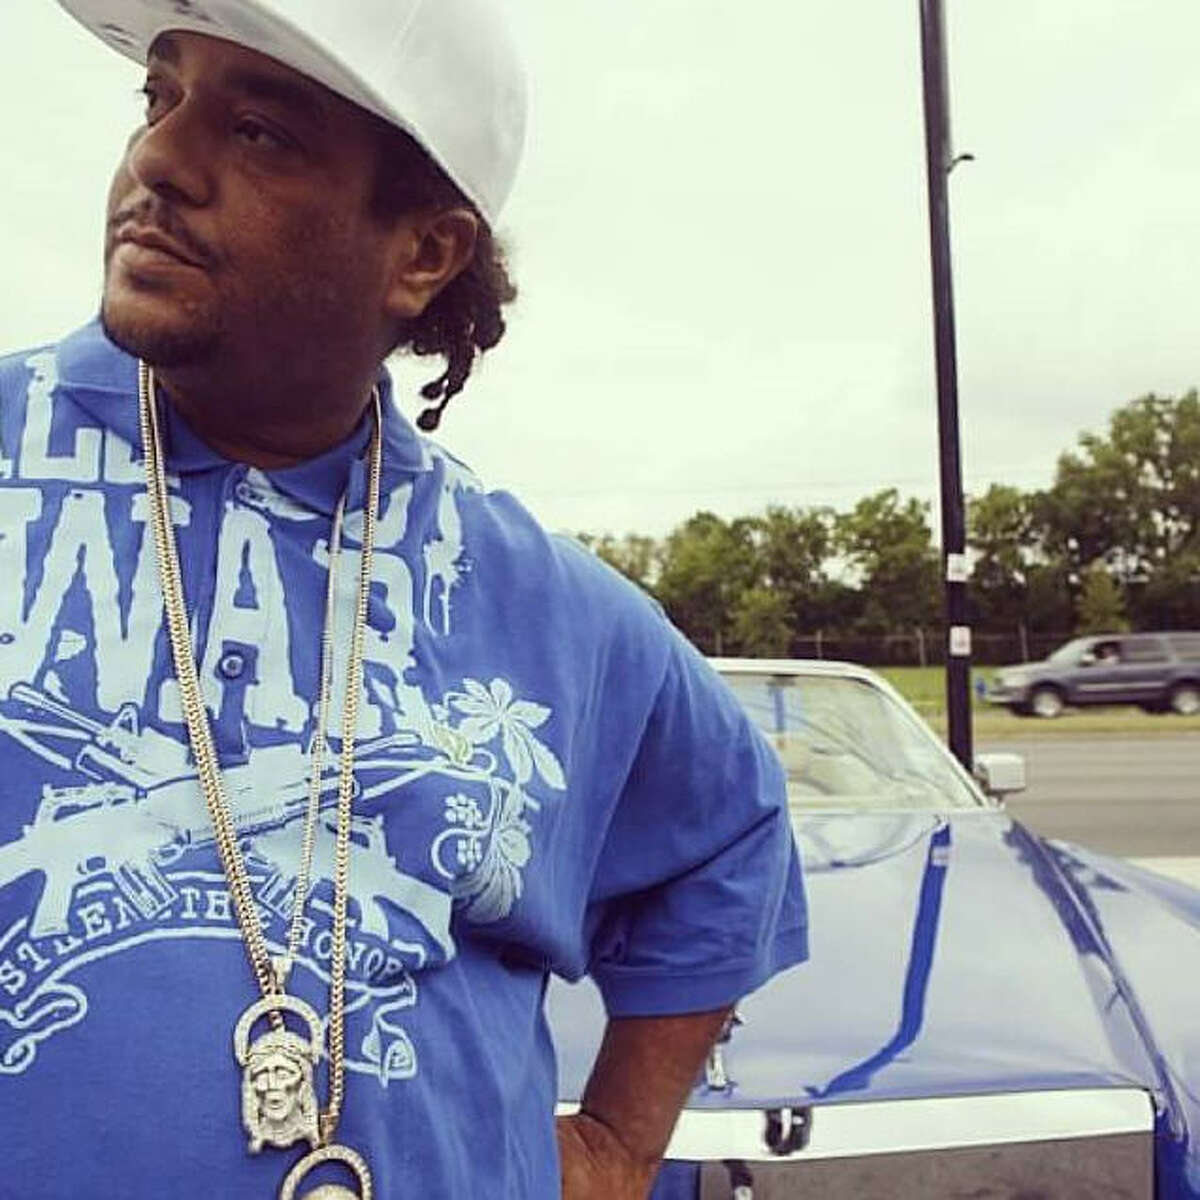 Christopher Barriere, better known in hip-hop circles as Mr. 3-2, was shot and killed Nov. 10, 2016 at a Southwest Houston gas station. He was a member of Houston's Screwed Up Click. PHOTOS: See more of Houston's most influential hip-hop and rap stars ...